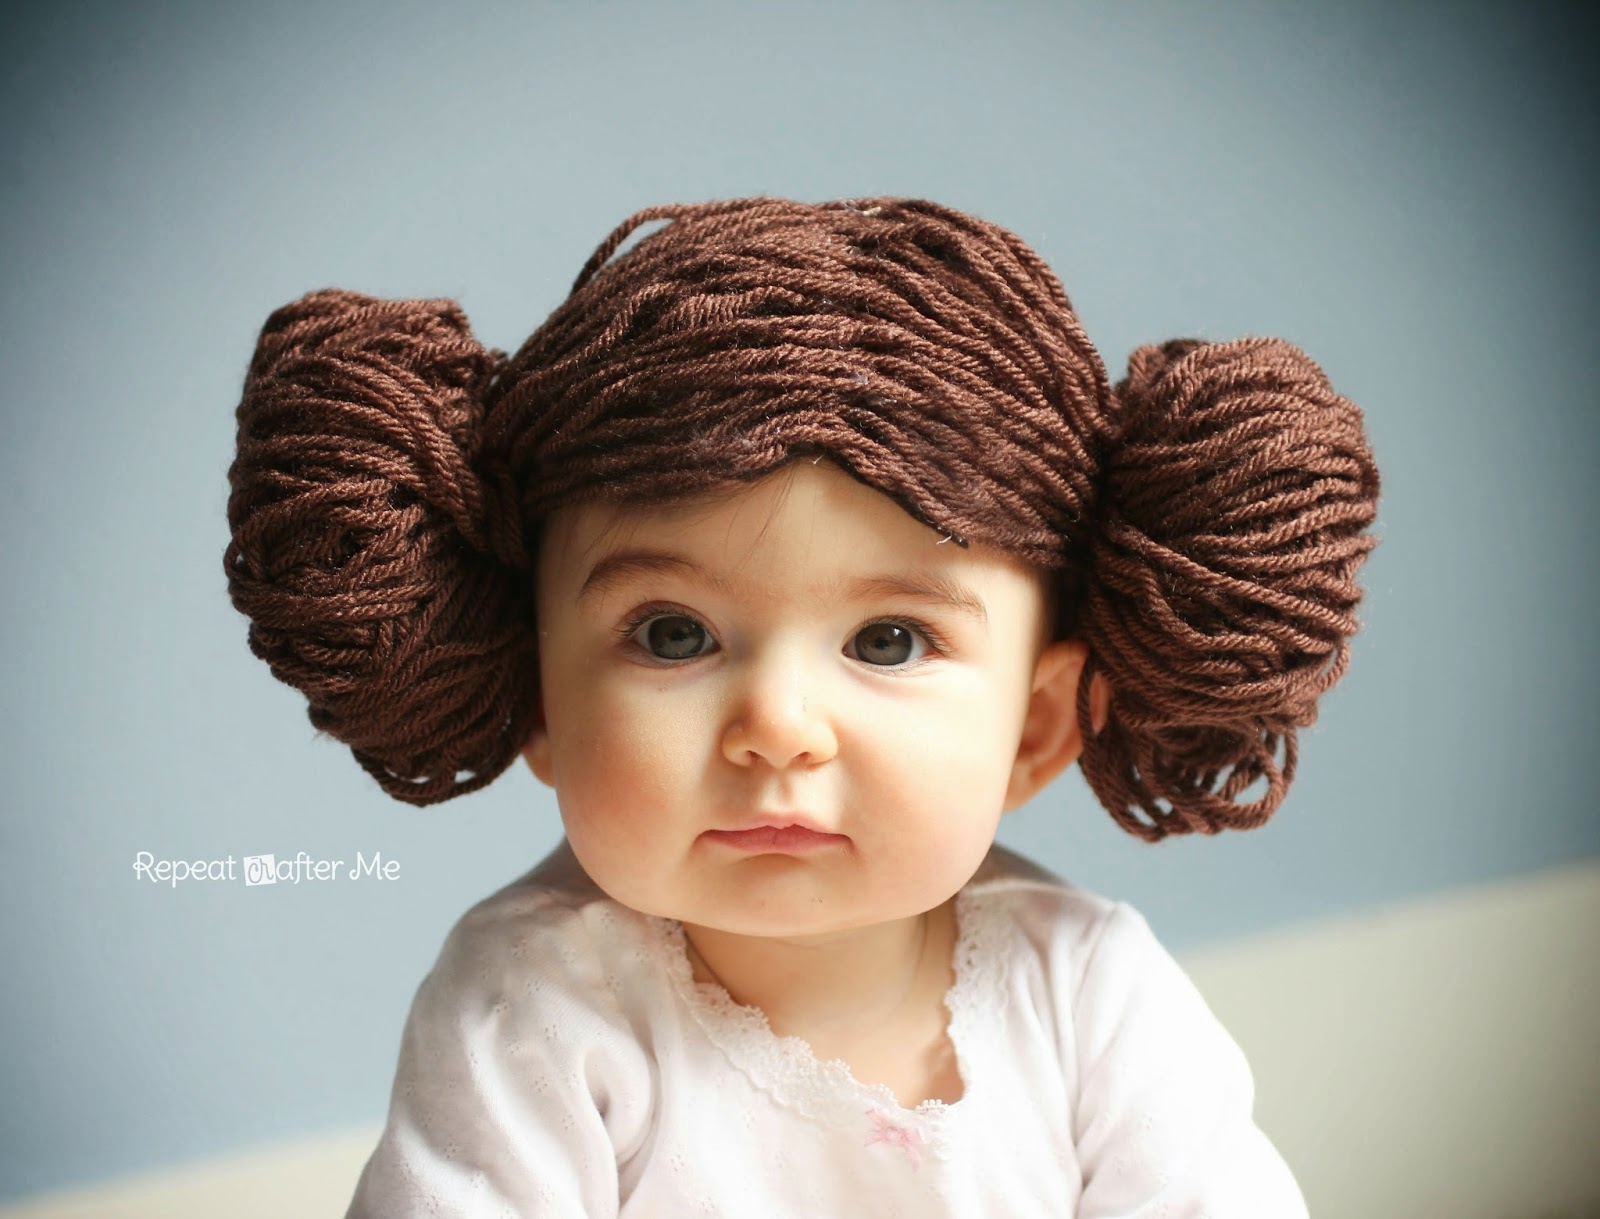 DIY Princess Leia Yarn Wig